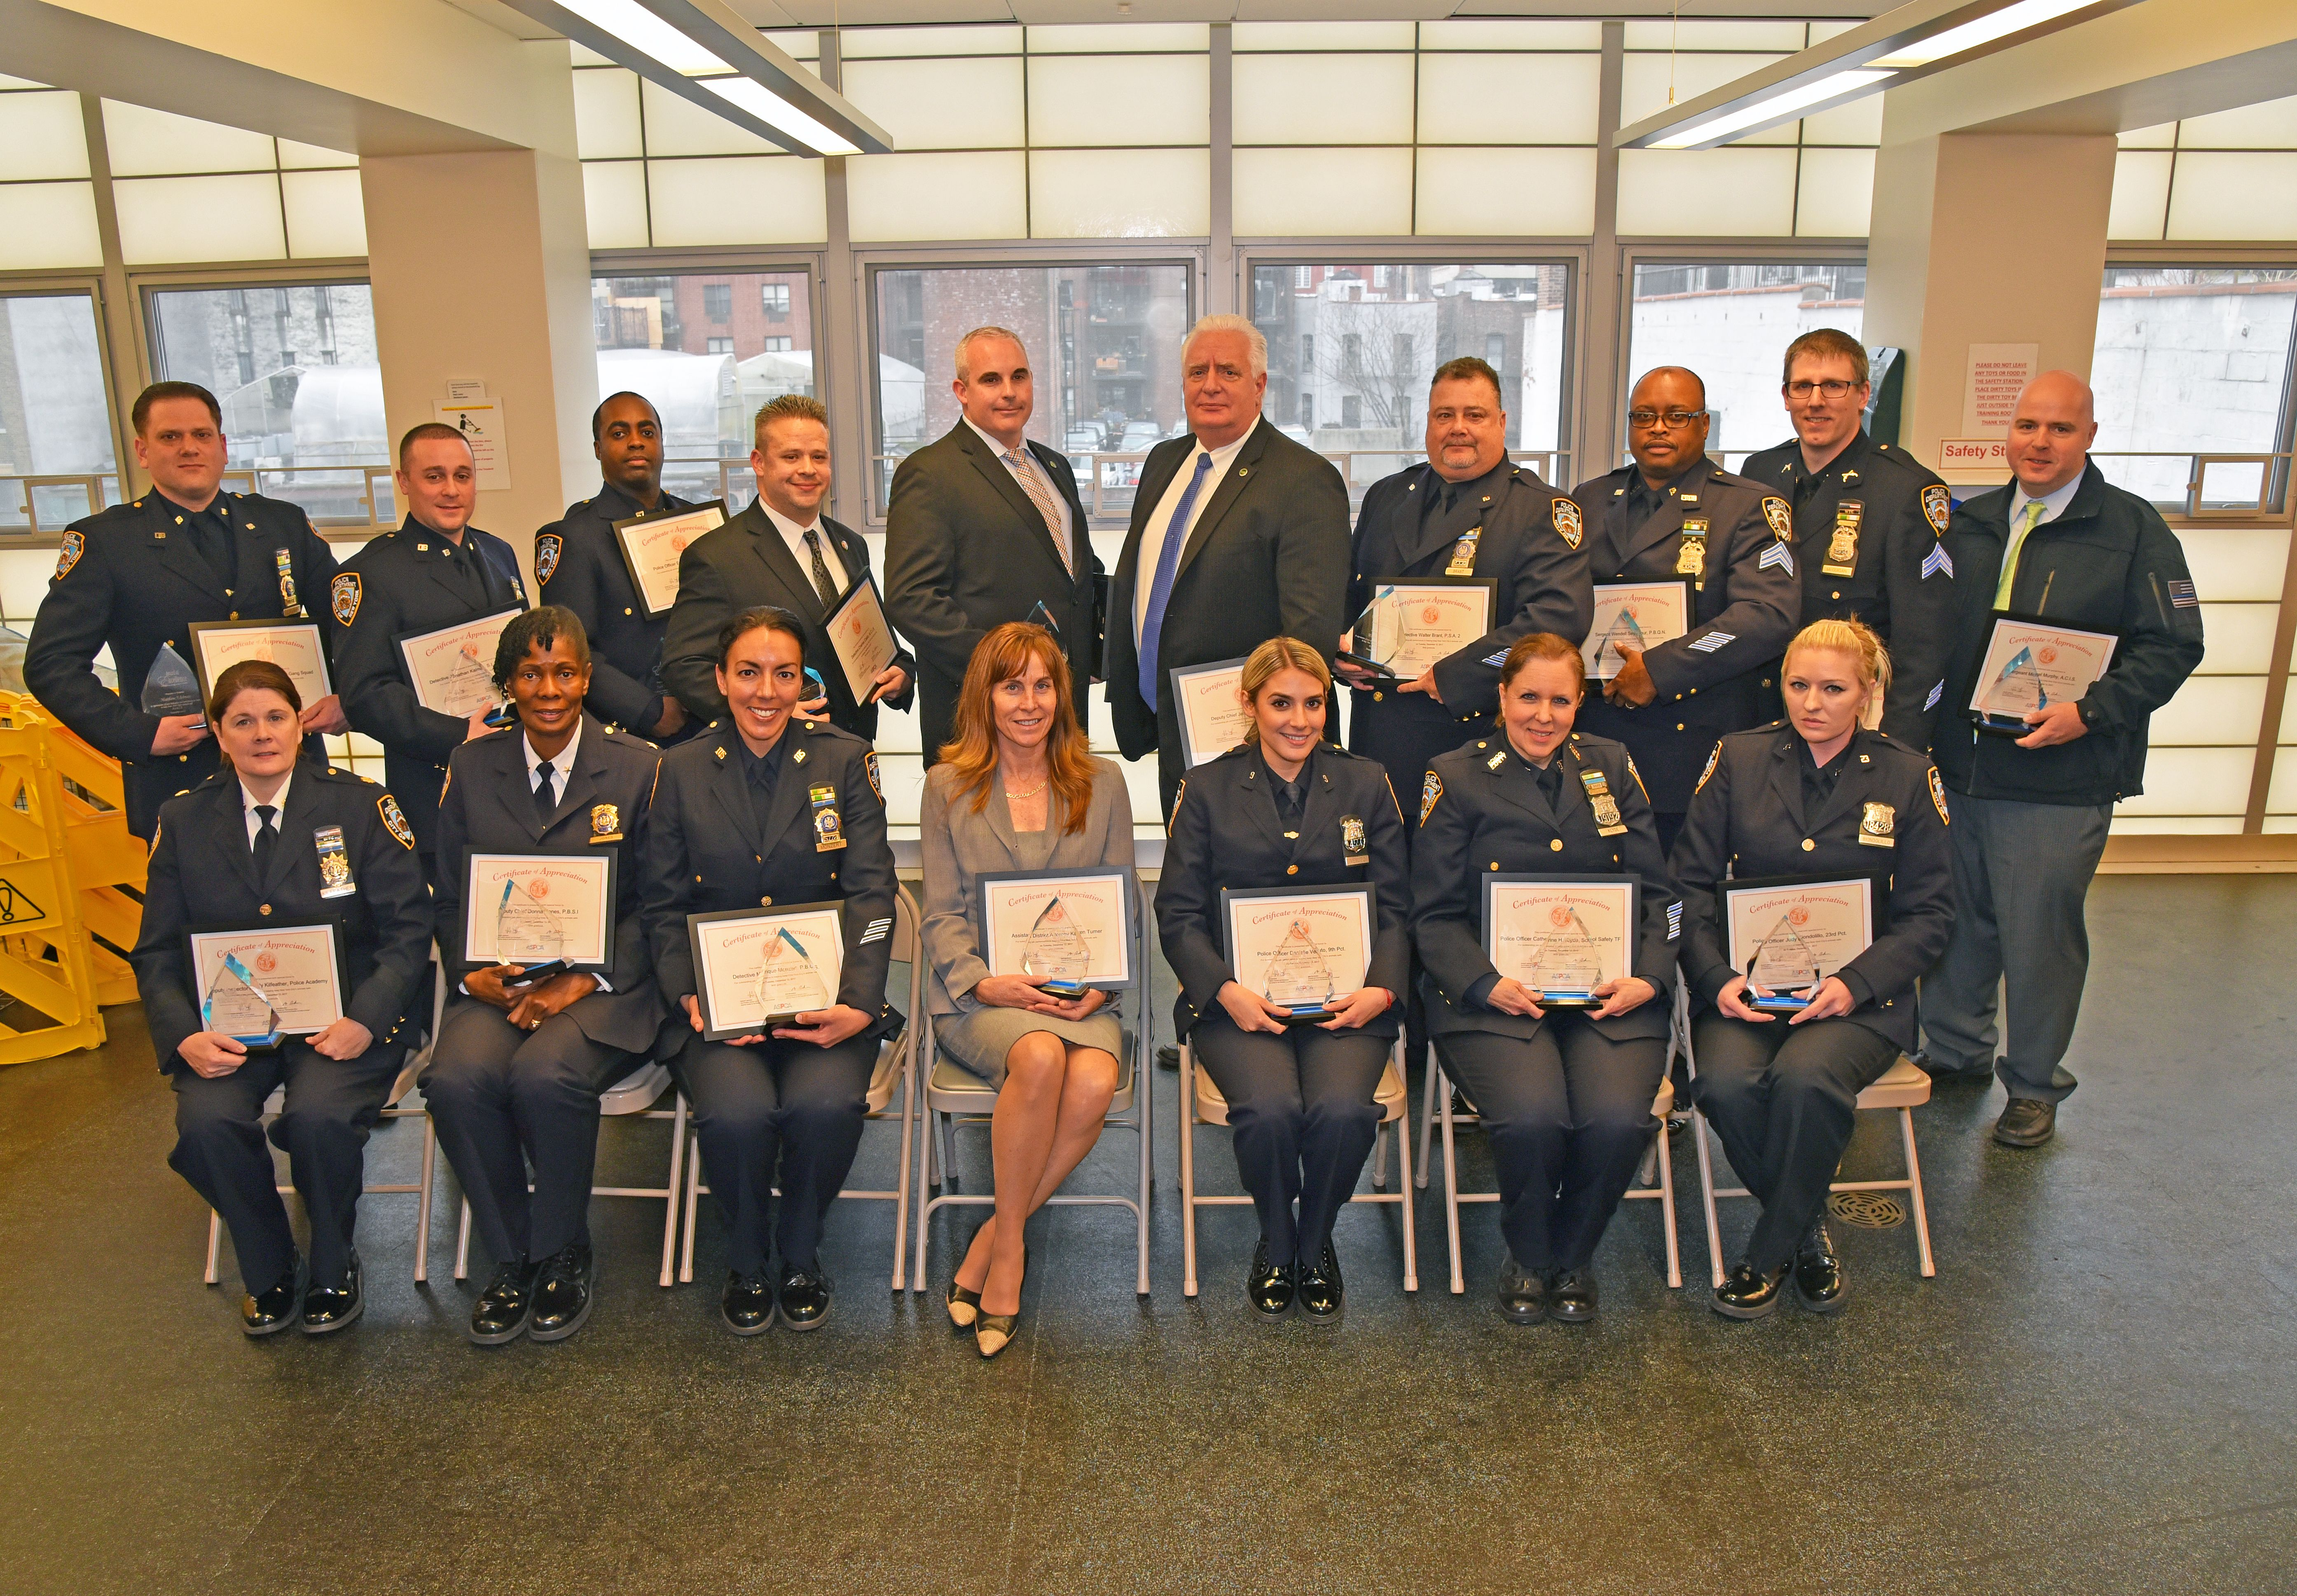 ASPCA Honors NYPD Officers at Appreciation Luncheon